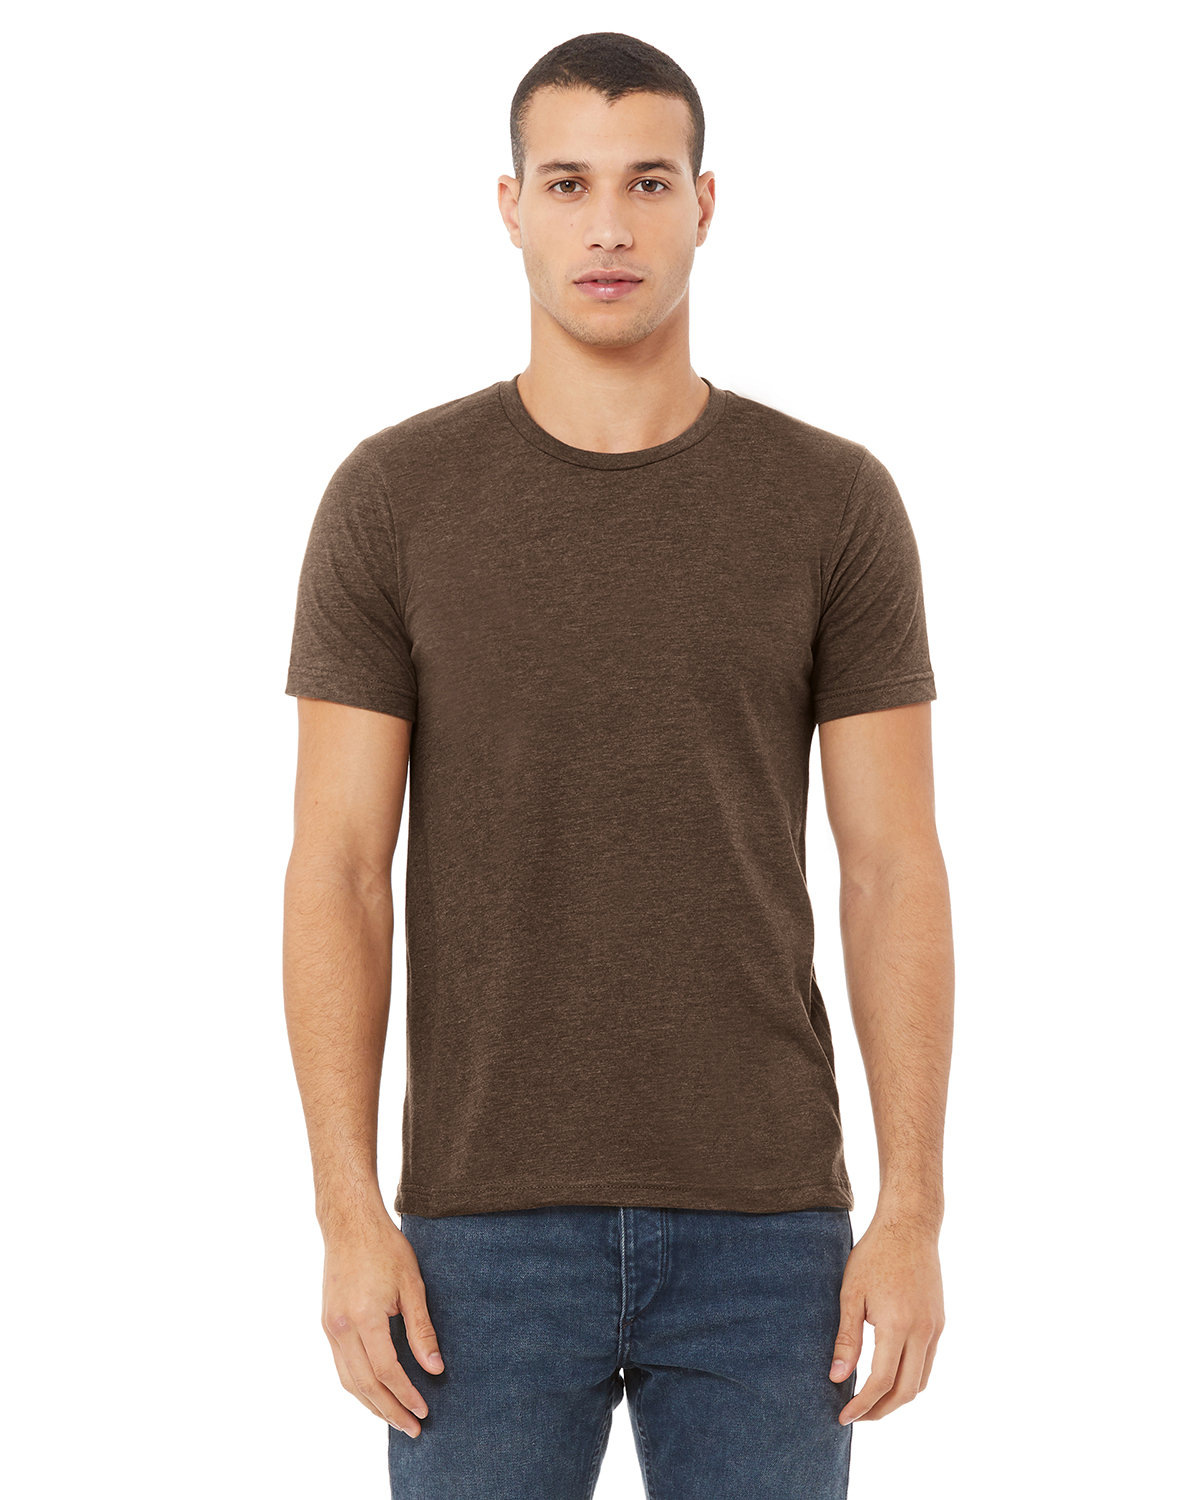 Bella + Canvas Unisex Heather CVC T-Shirt HEATHER BROWN